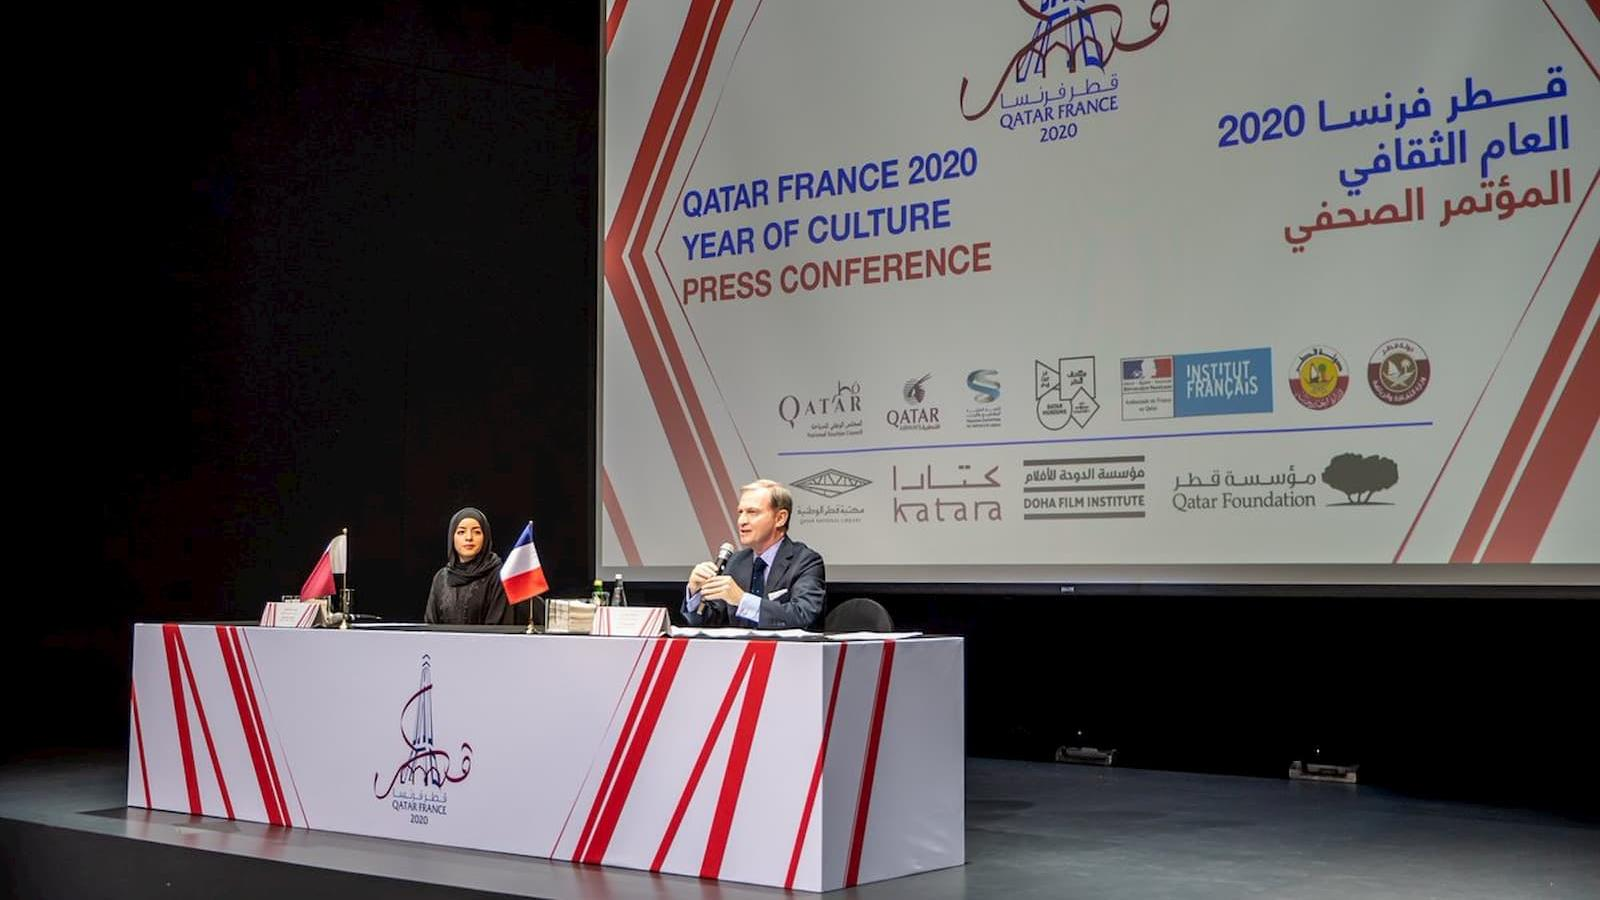 Qatar-France 2020 Year of Culture to begin this Friday